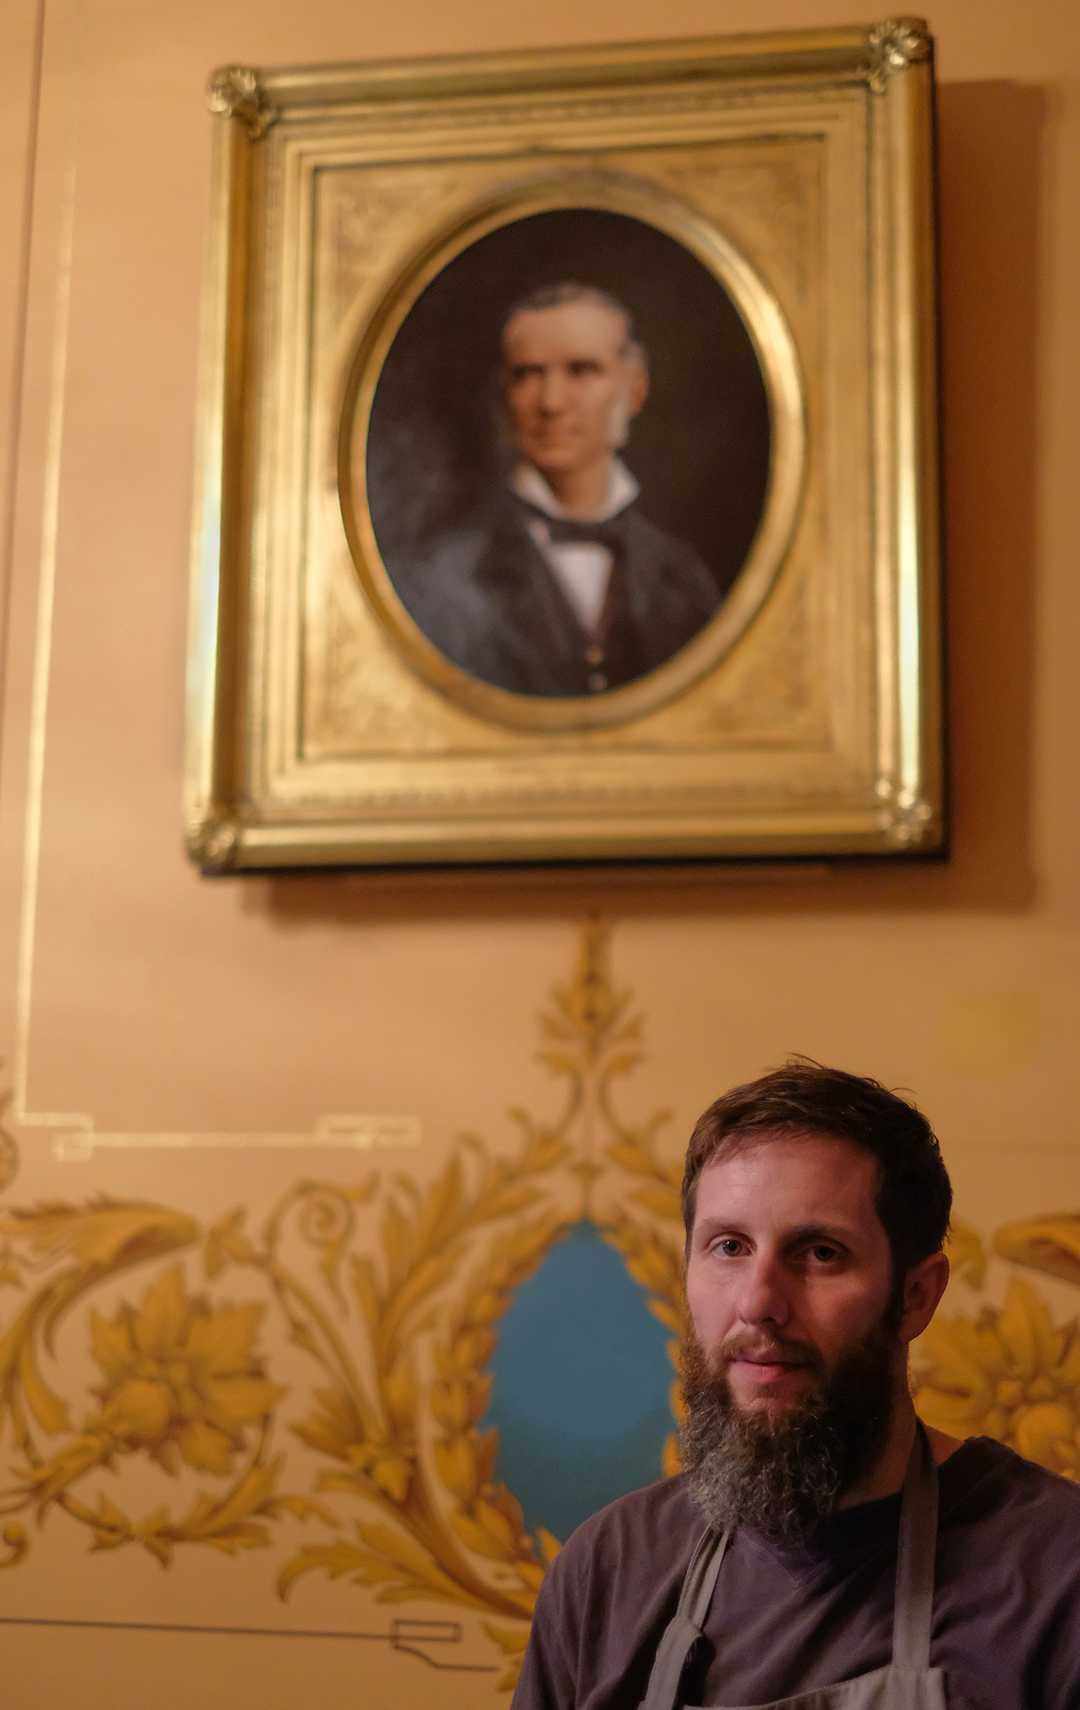 Joshua Risner below a portrait of Governer Charles Croswell